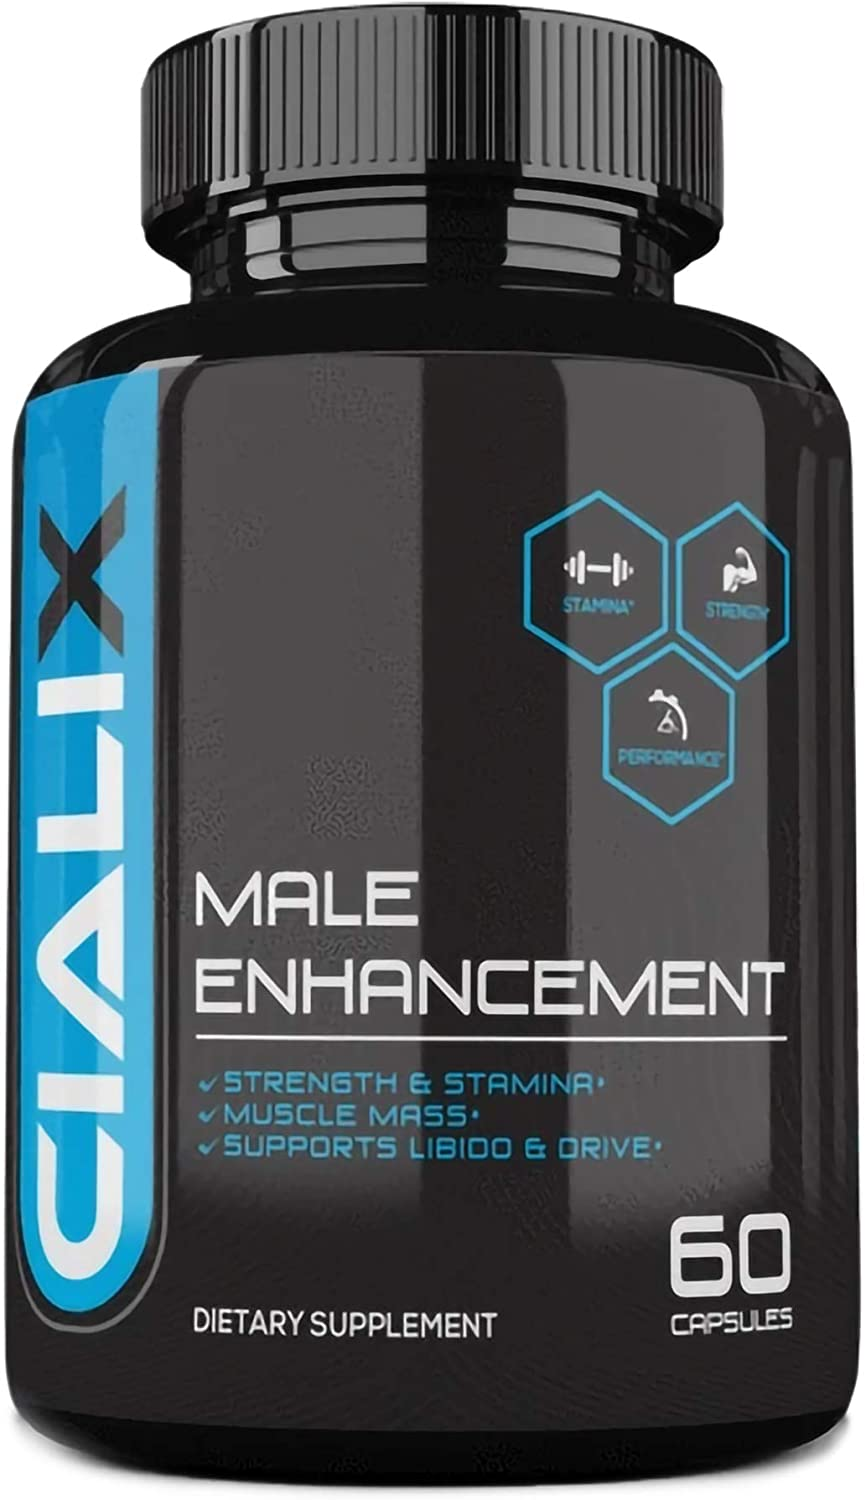 Cialix Male Special Offer Coupon – 95% Off Your Order + Free Shipping